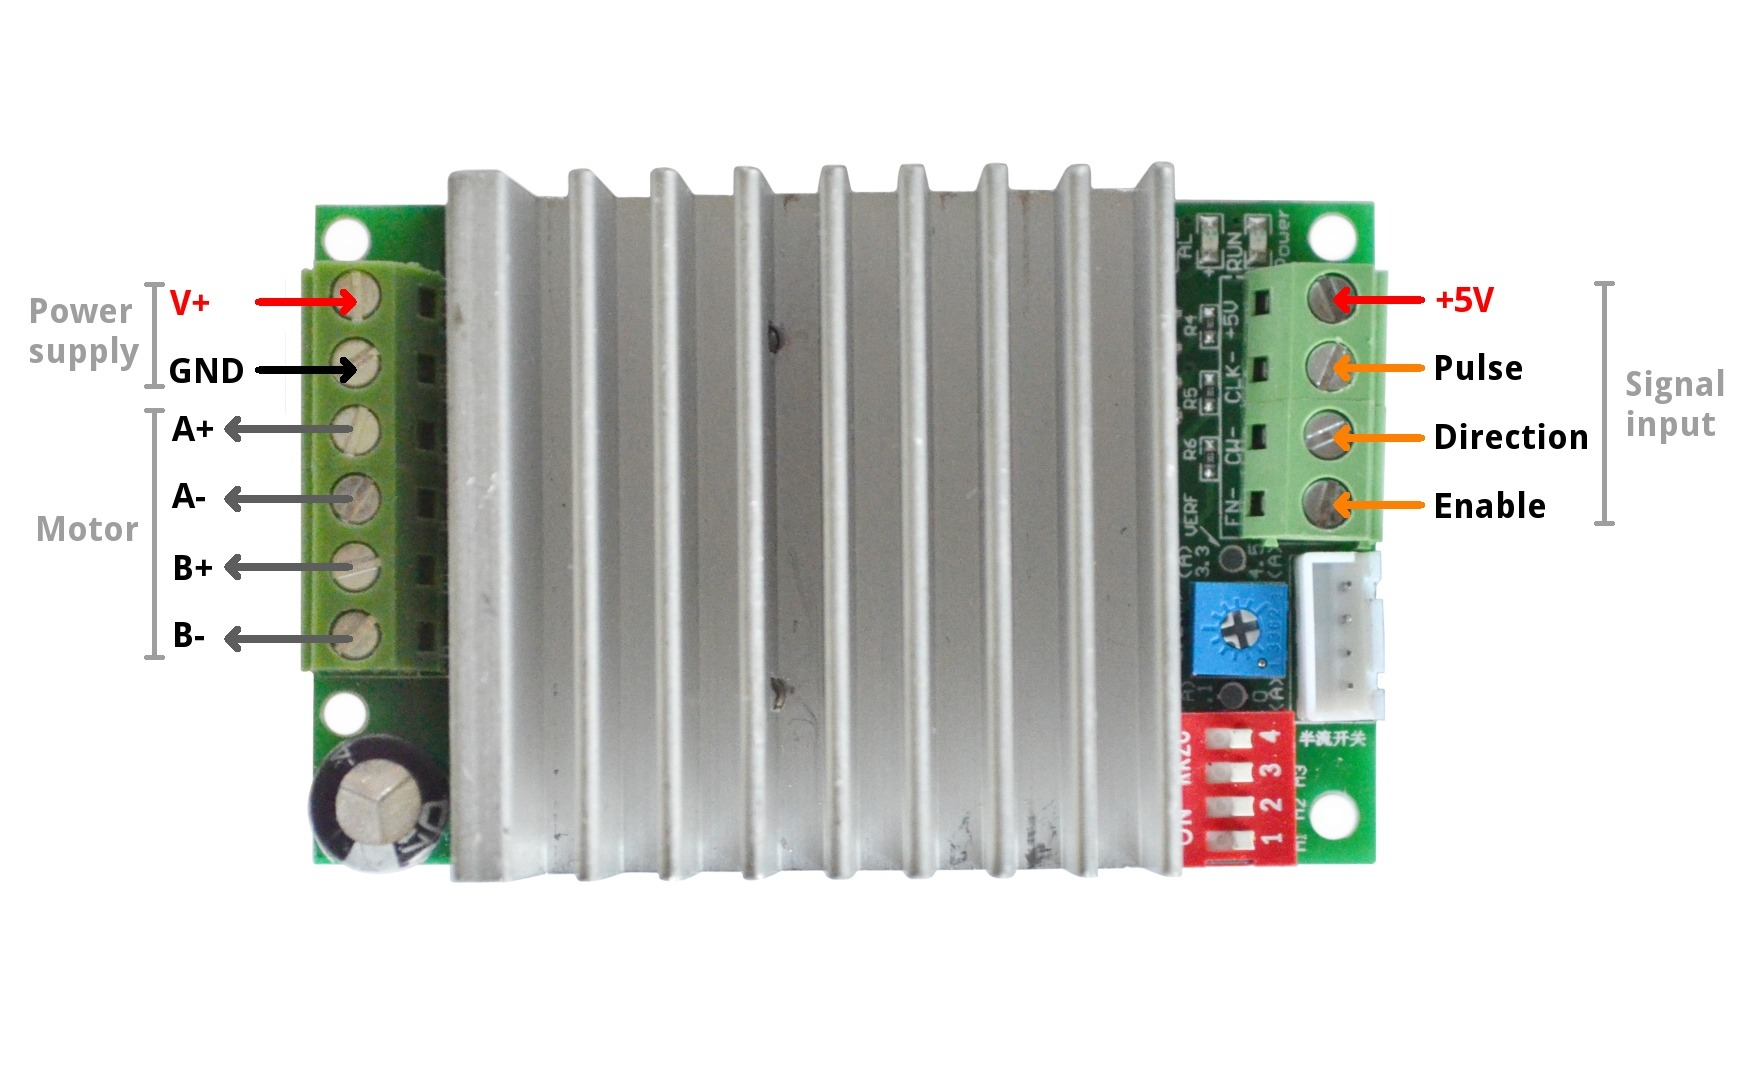 hight resolution of wiring tb6600 4 5a drive input output diagram